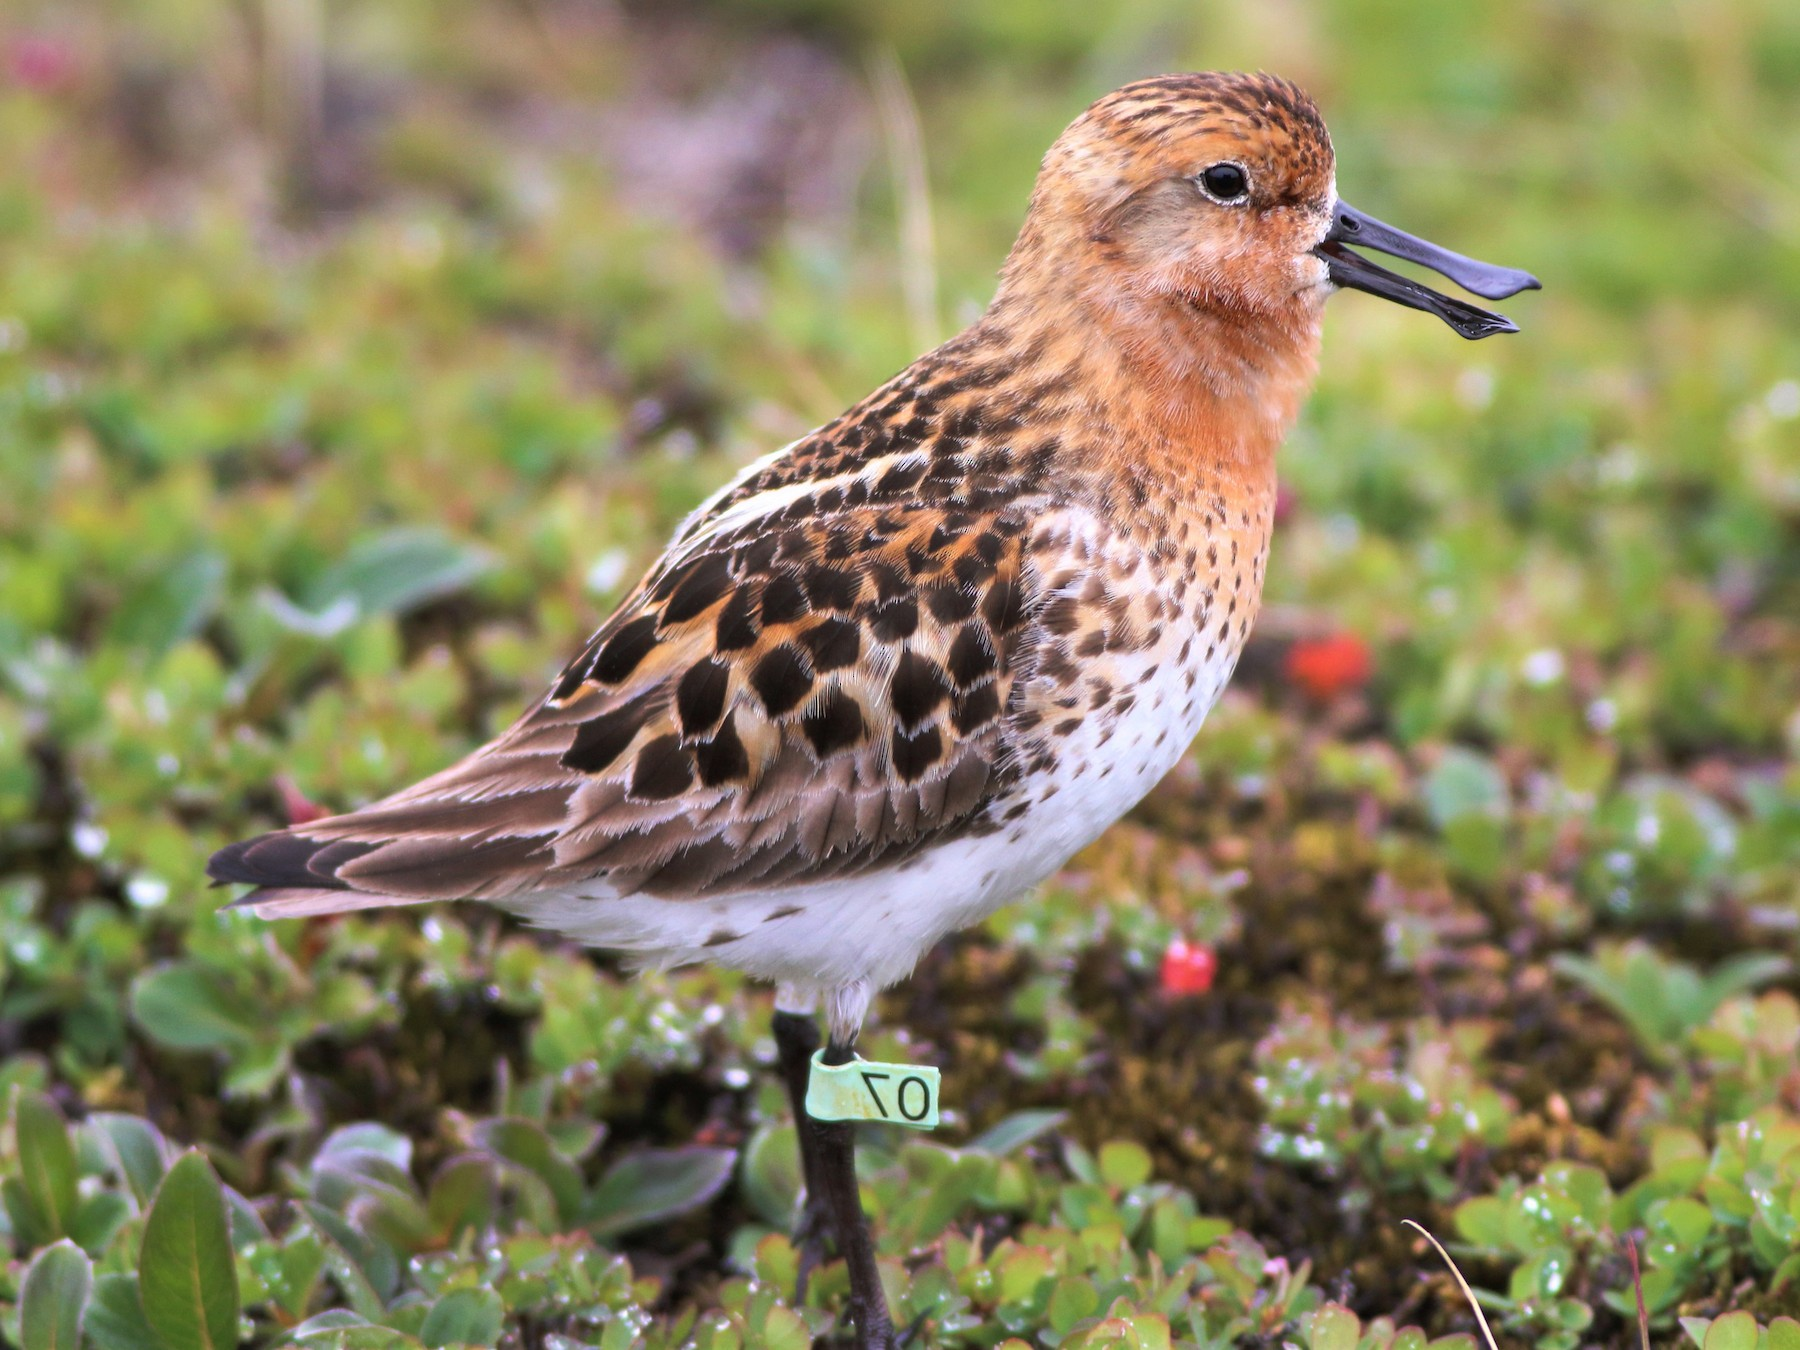 Spoon-billed Sandpiper - Wyatt Egelhoff